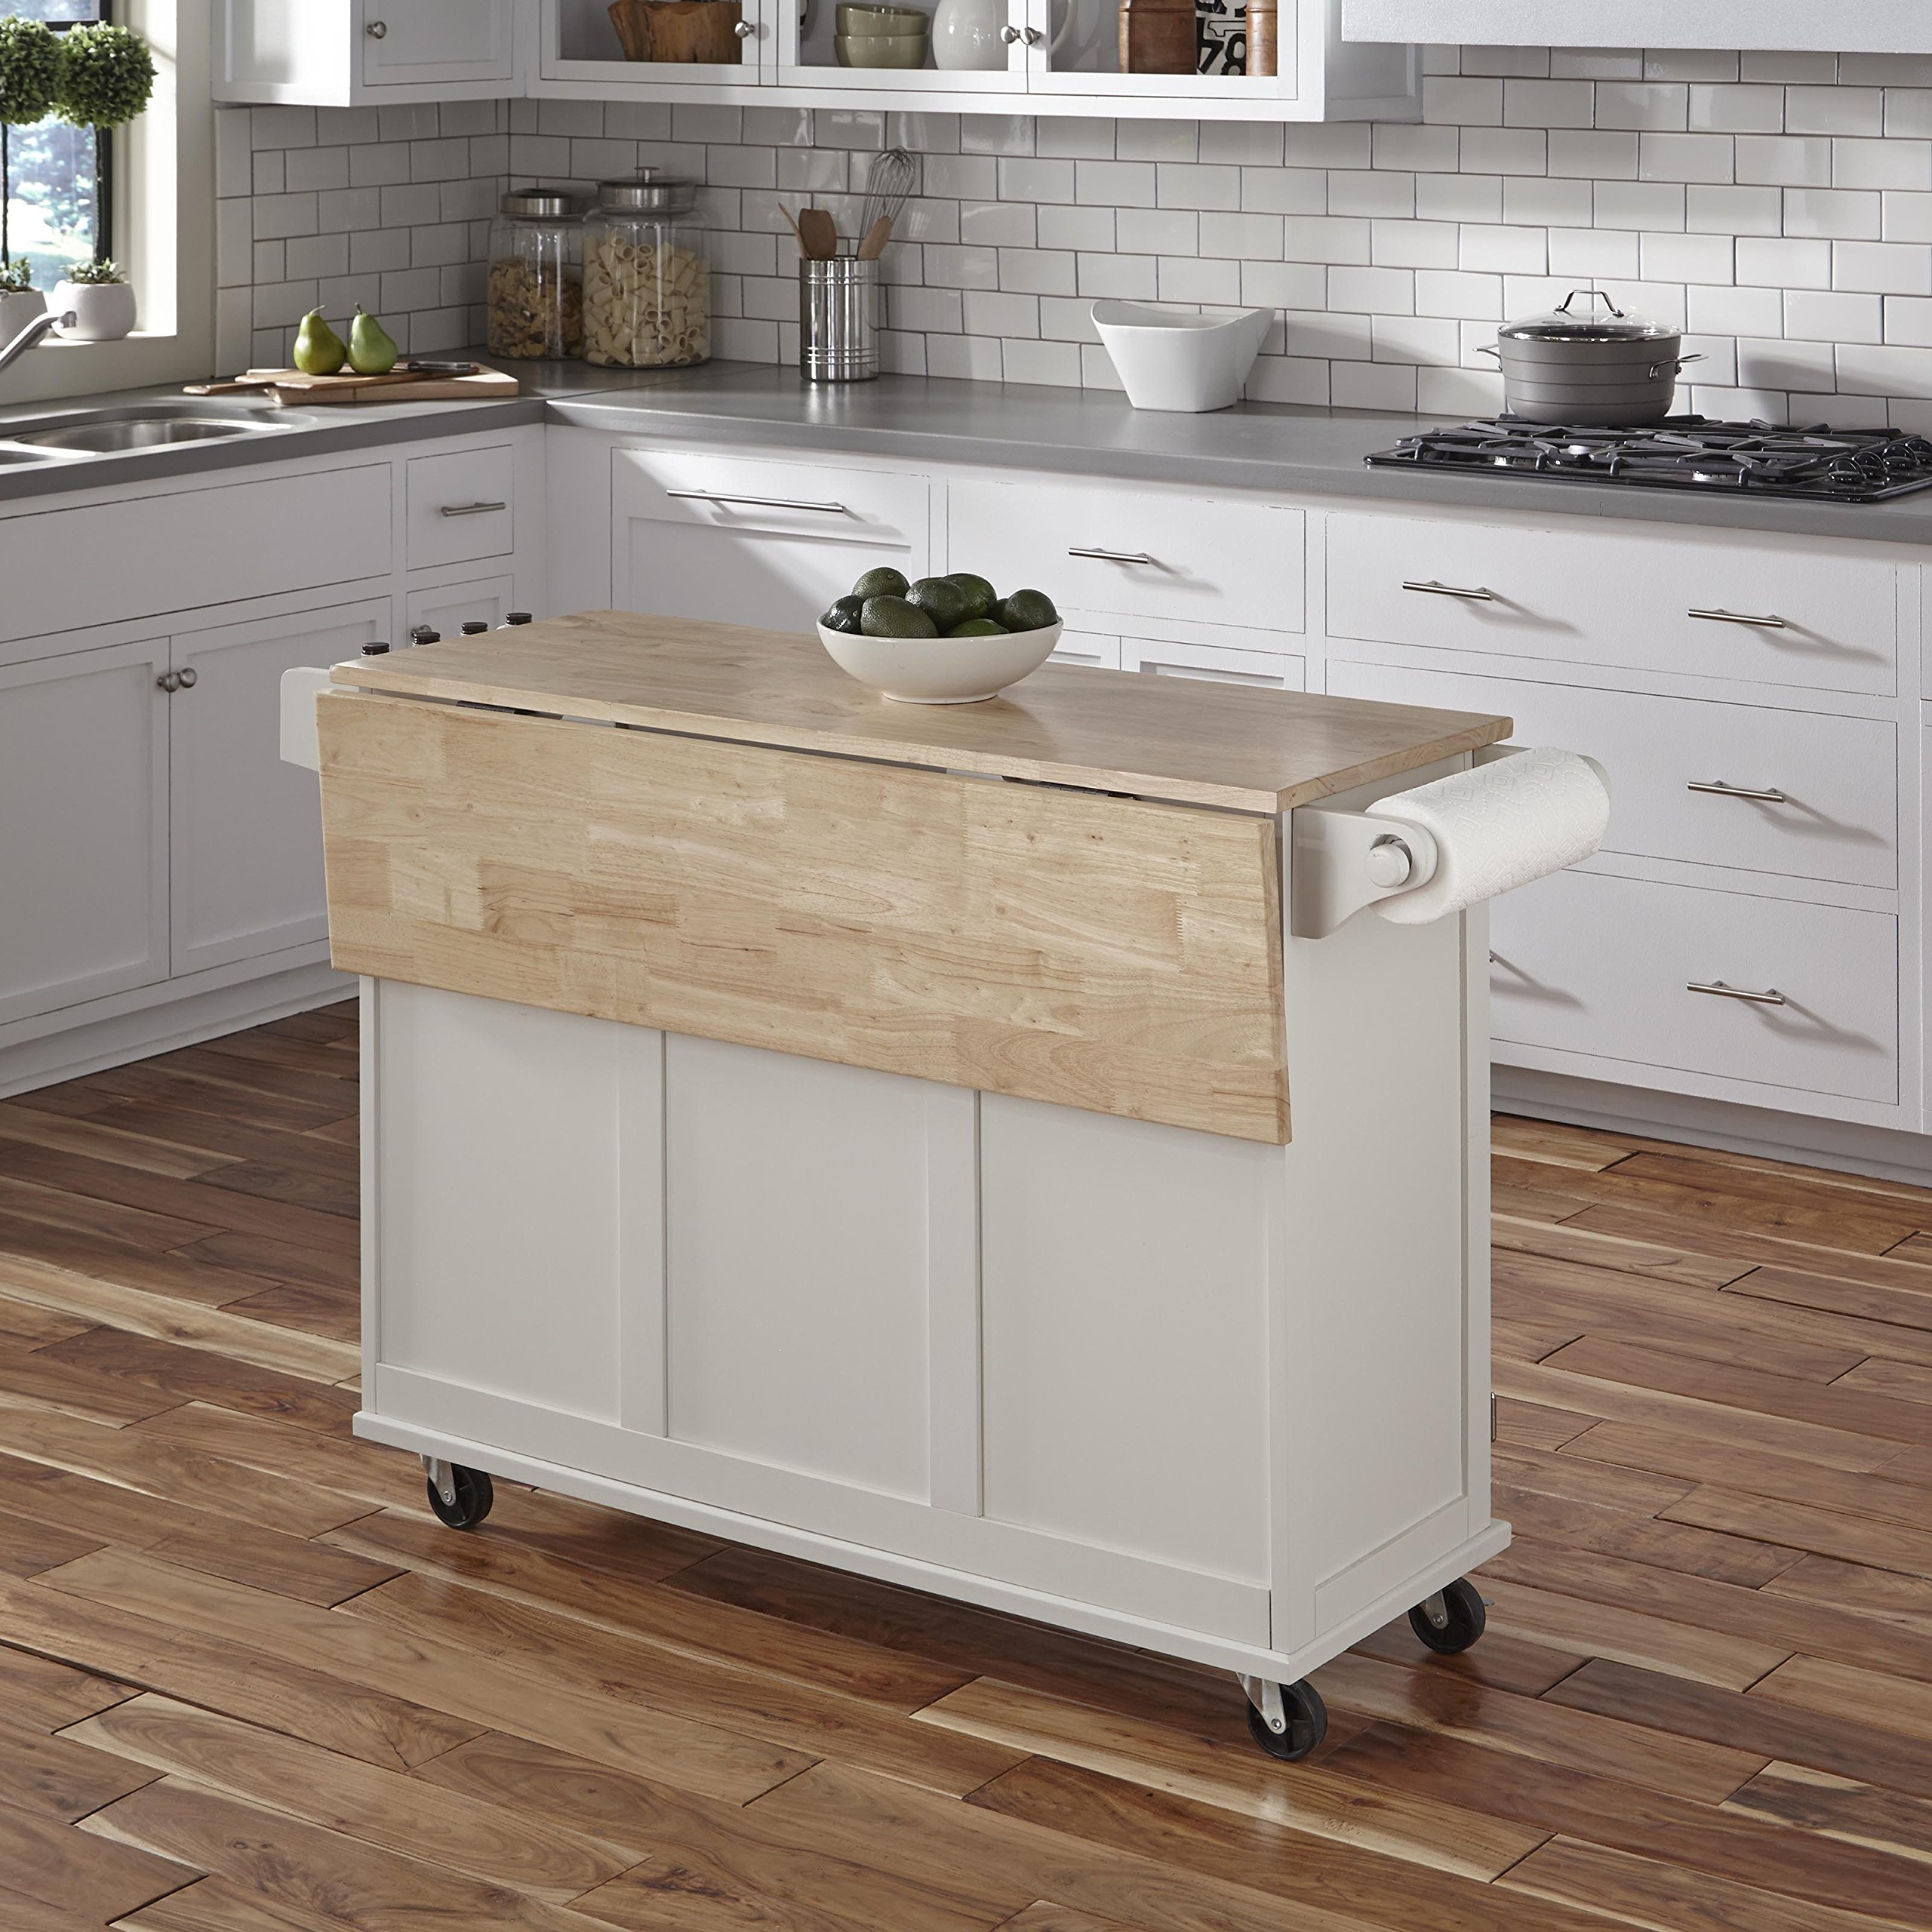 Home Styles 4511-95 Liberty Kitchen Cart with Wood Top, White by Home Styles (Image #3)